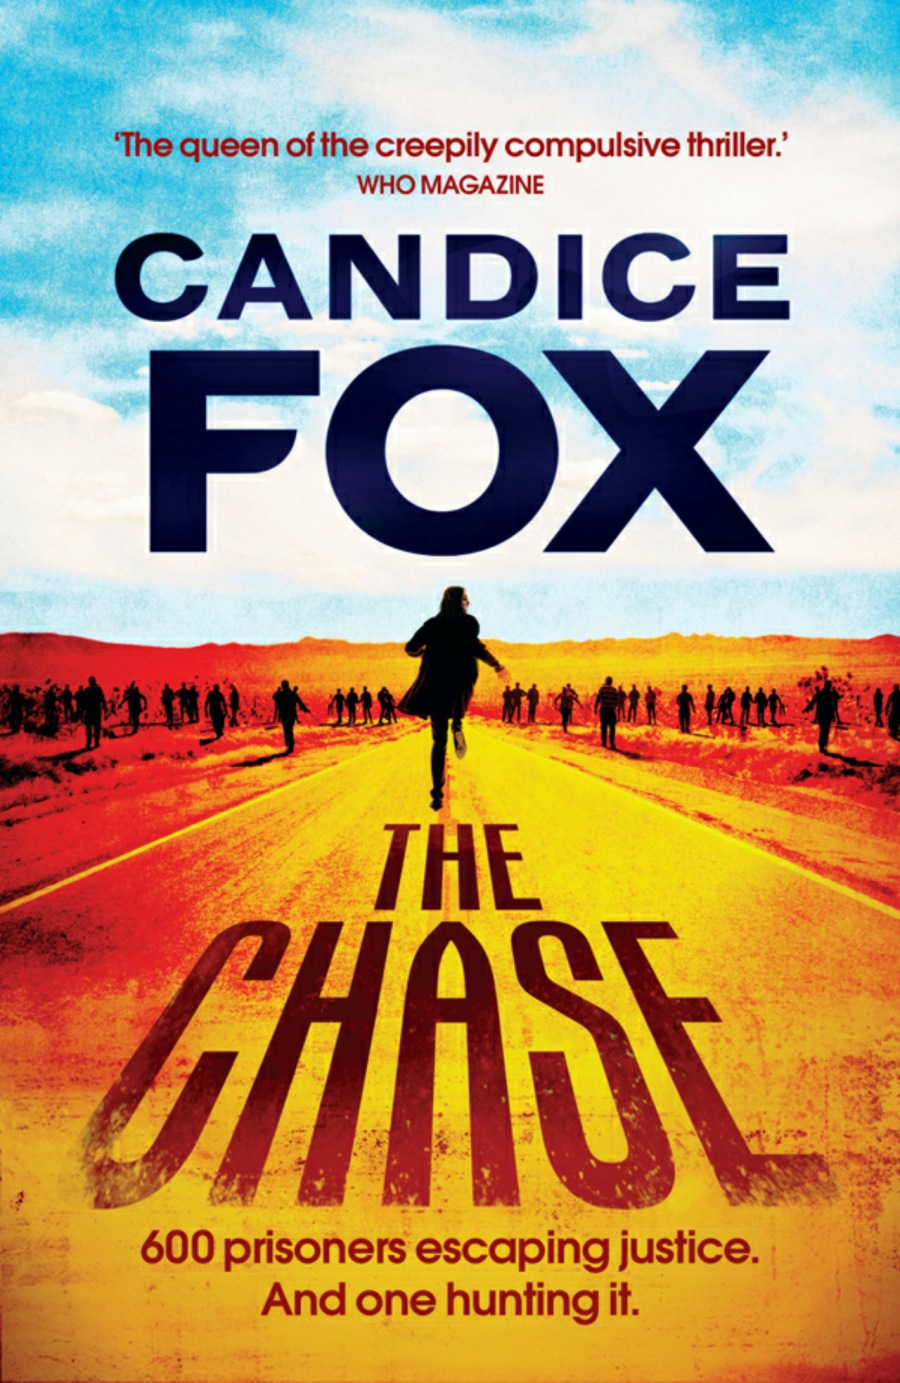 Candice Fox, The Chase cover image